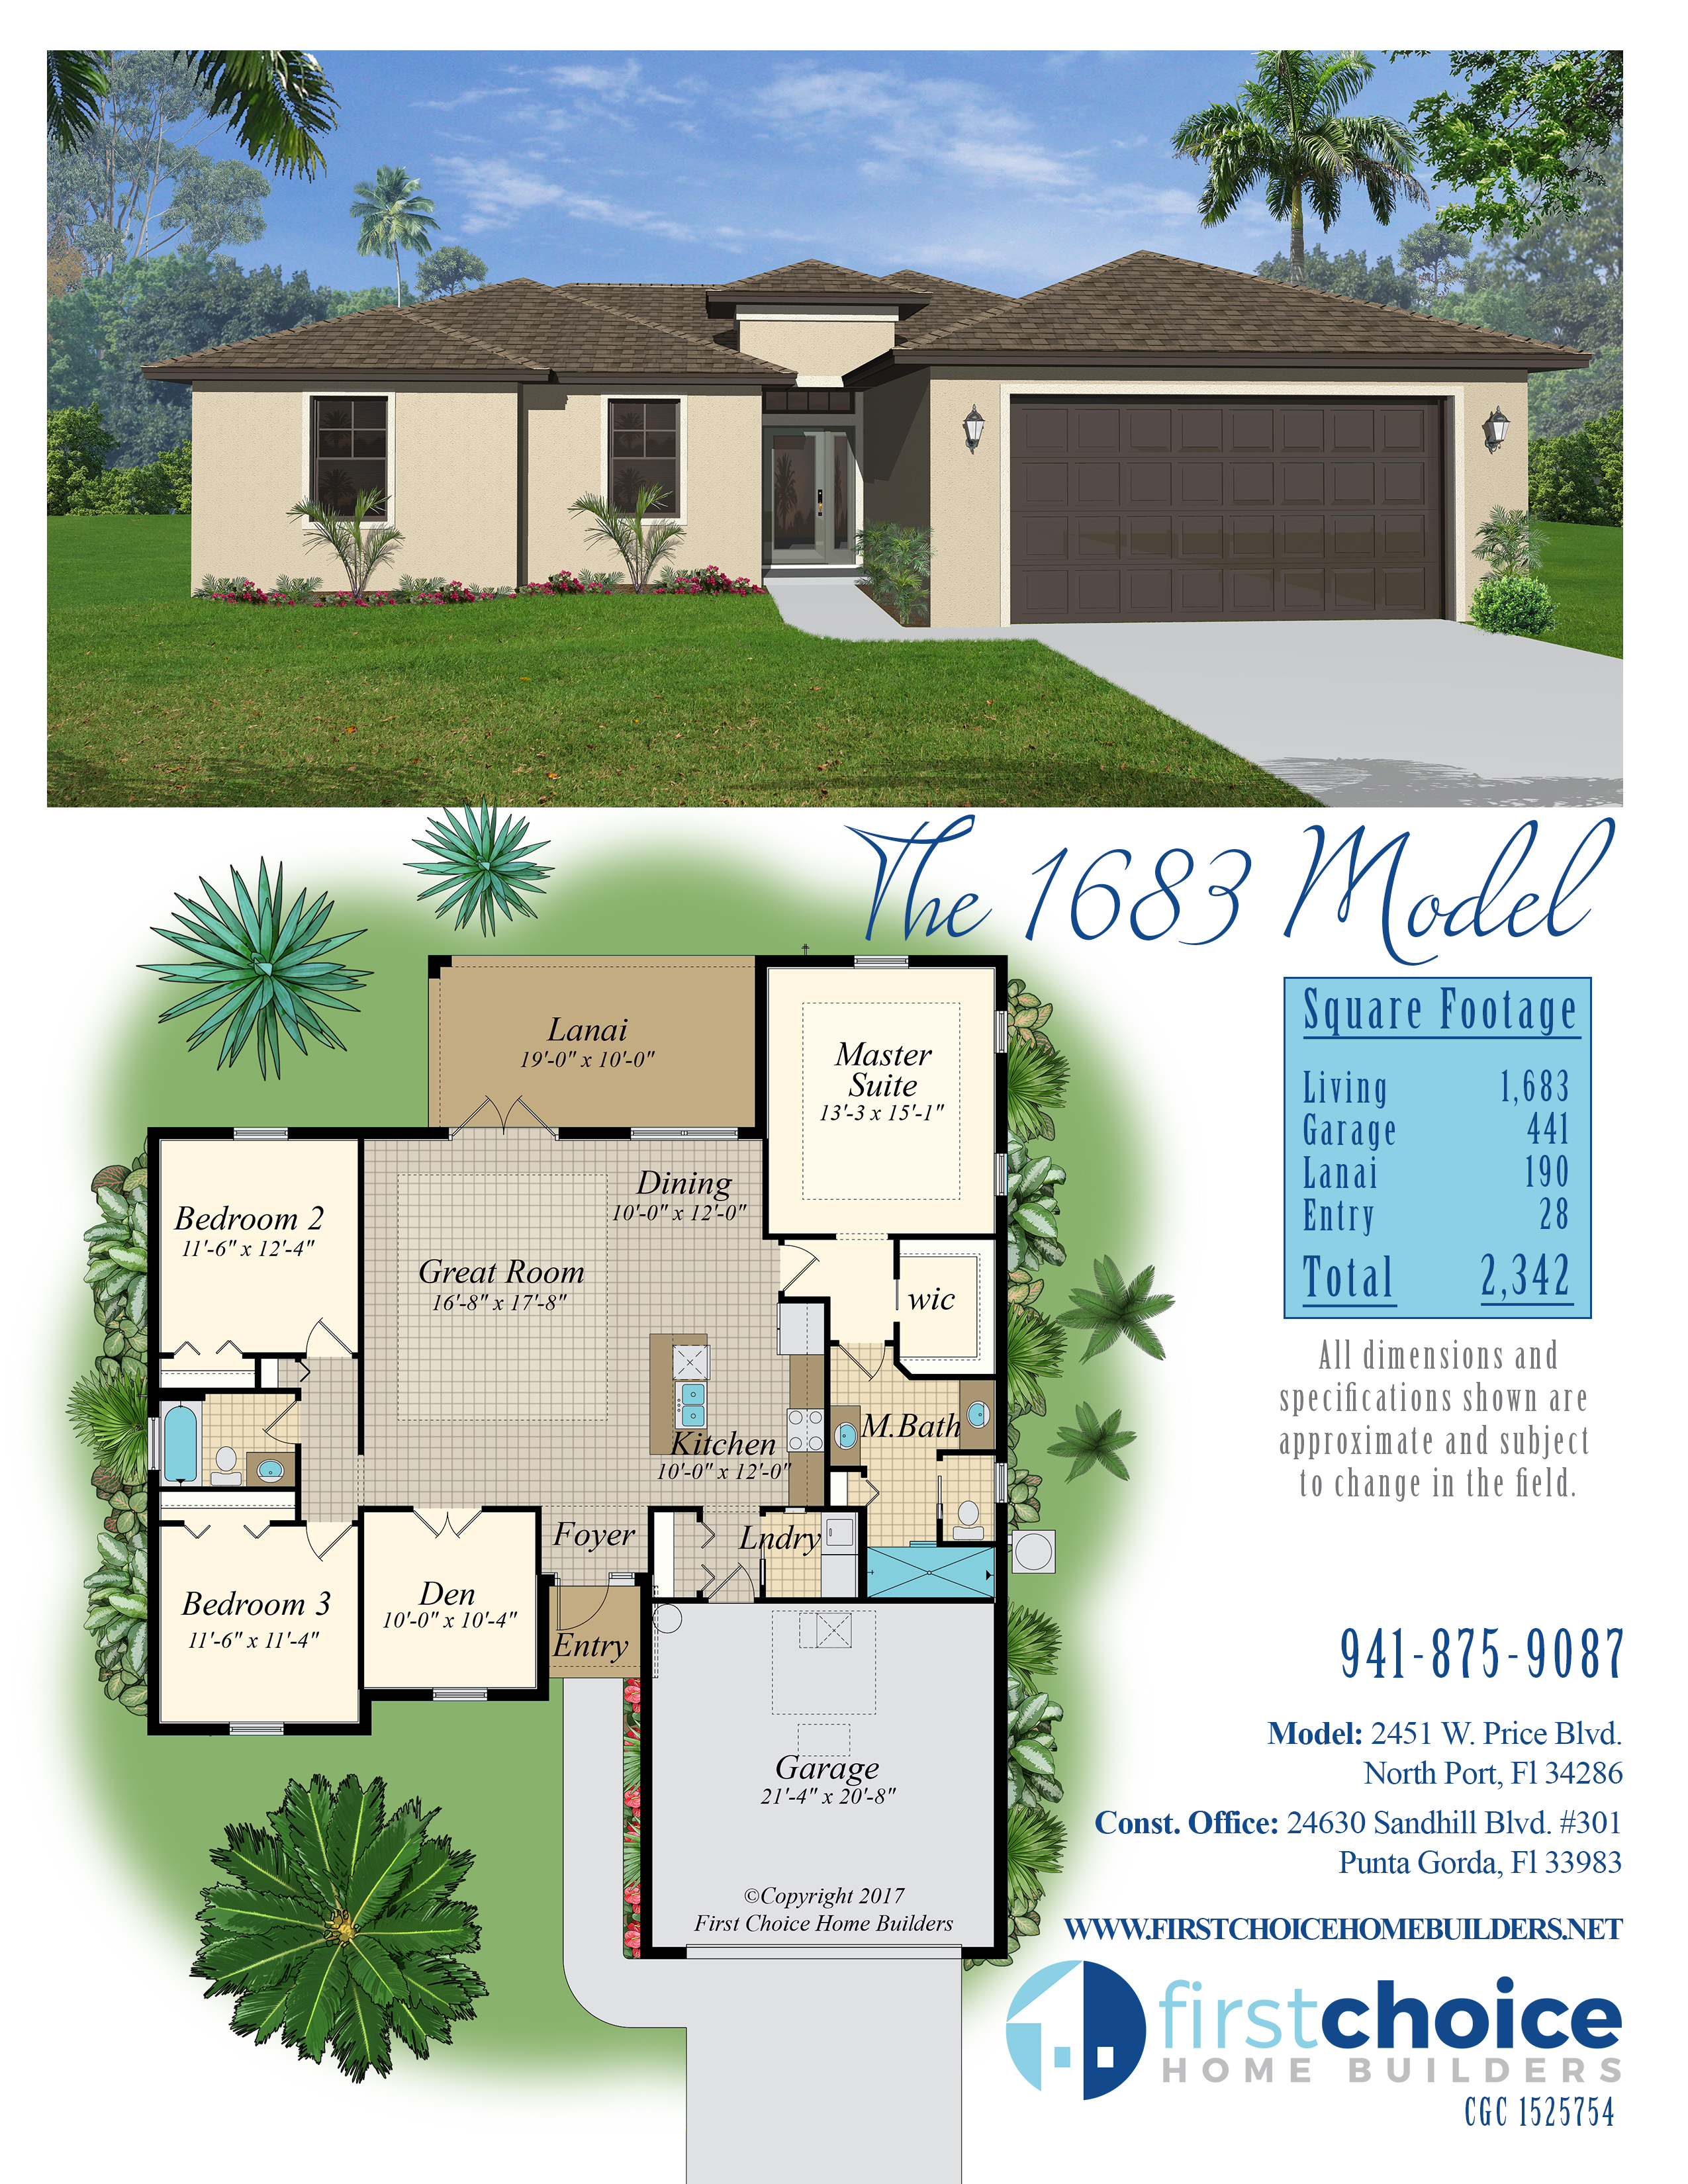 FLOORPLANS – First Choice Home Builders